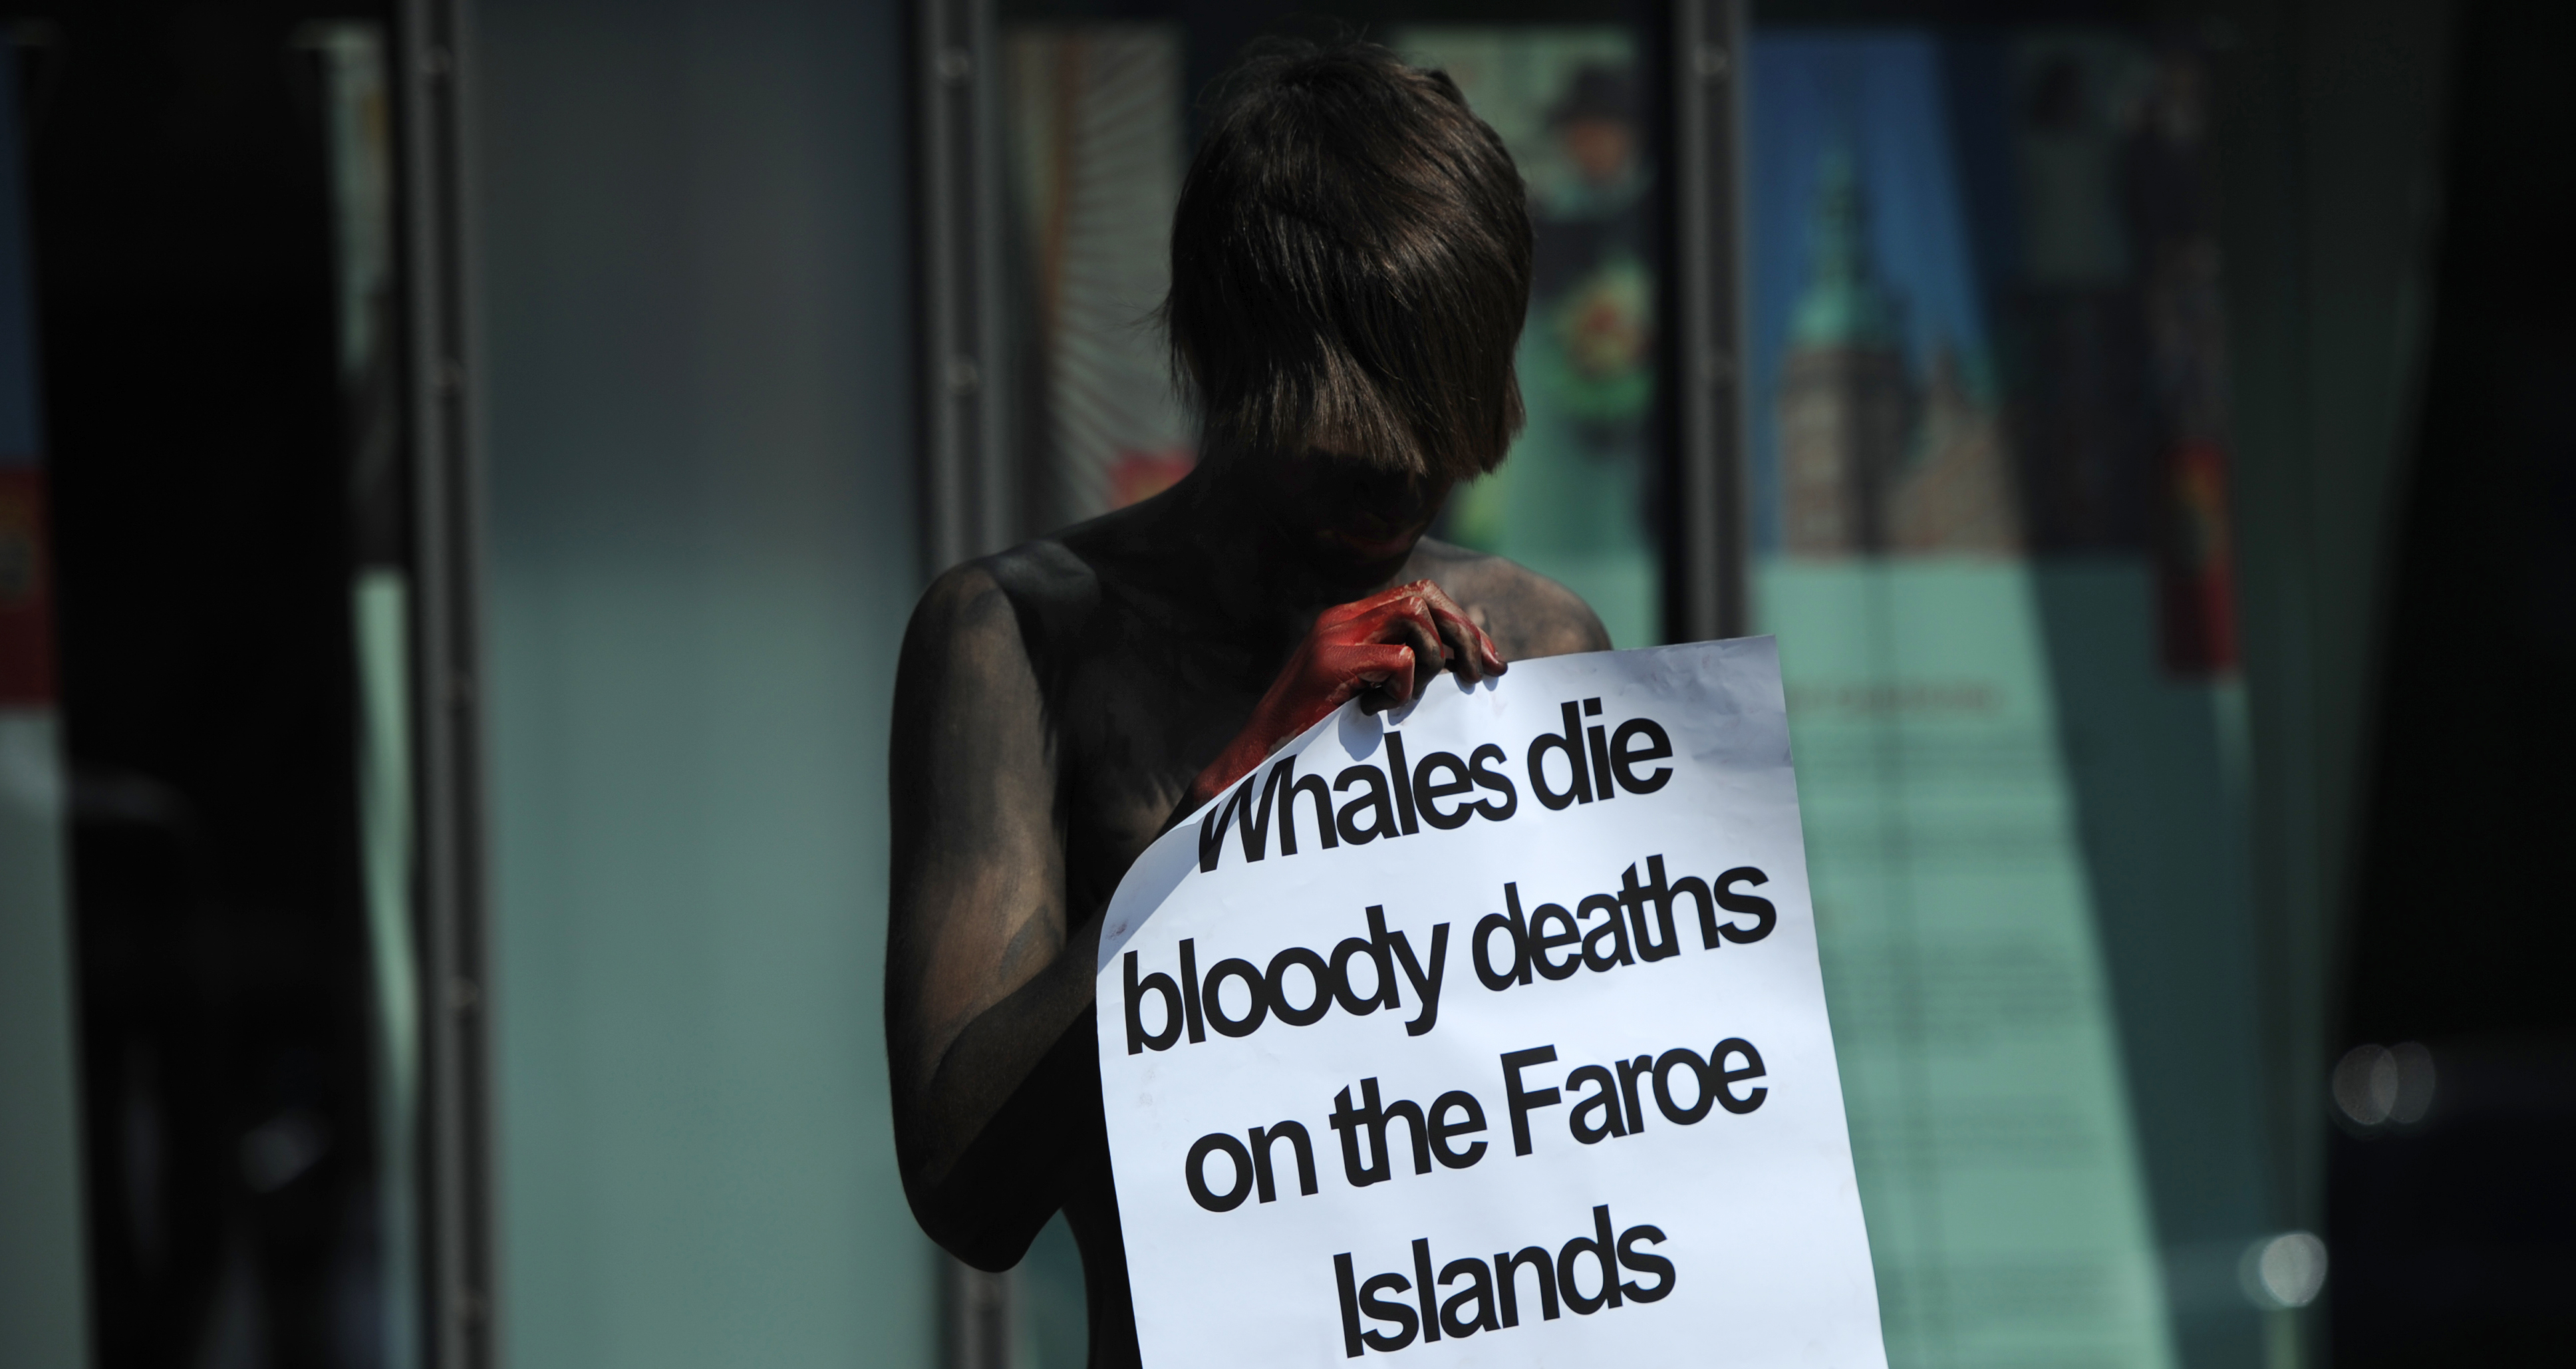 Bloody Photos Show Mass Slaughter of Whales in the Faroe Islands